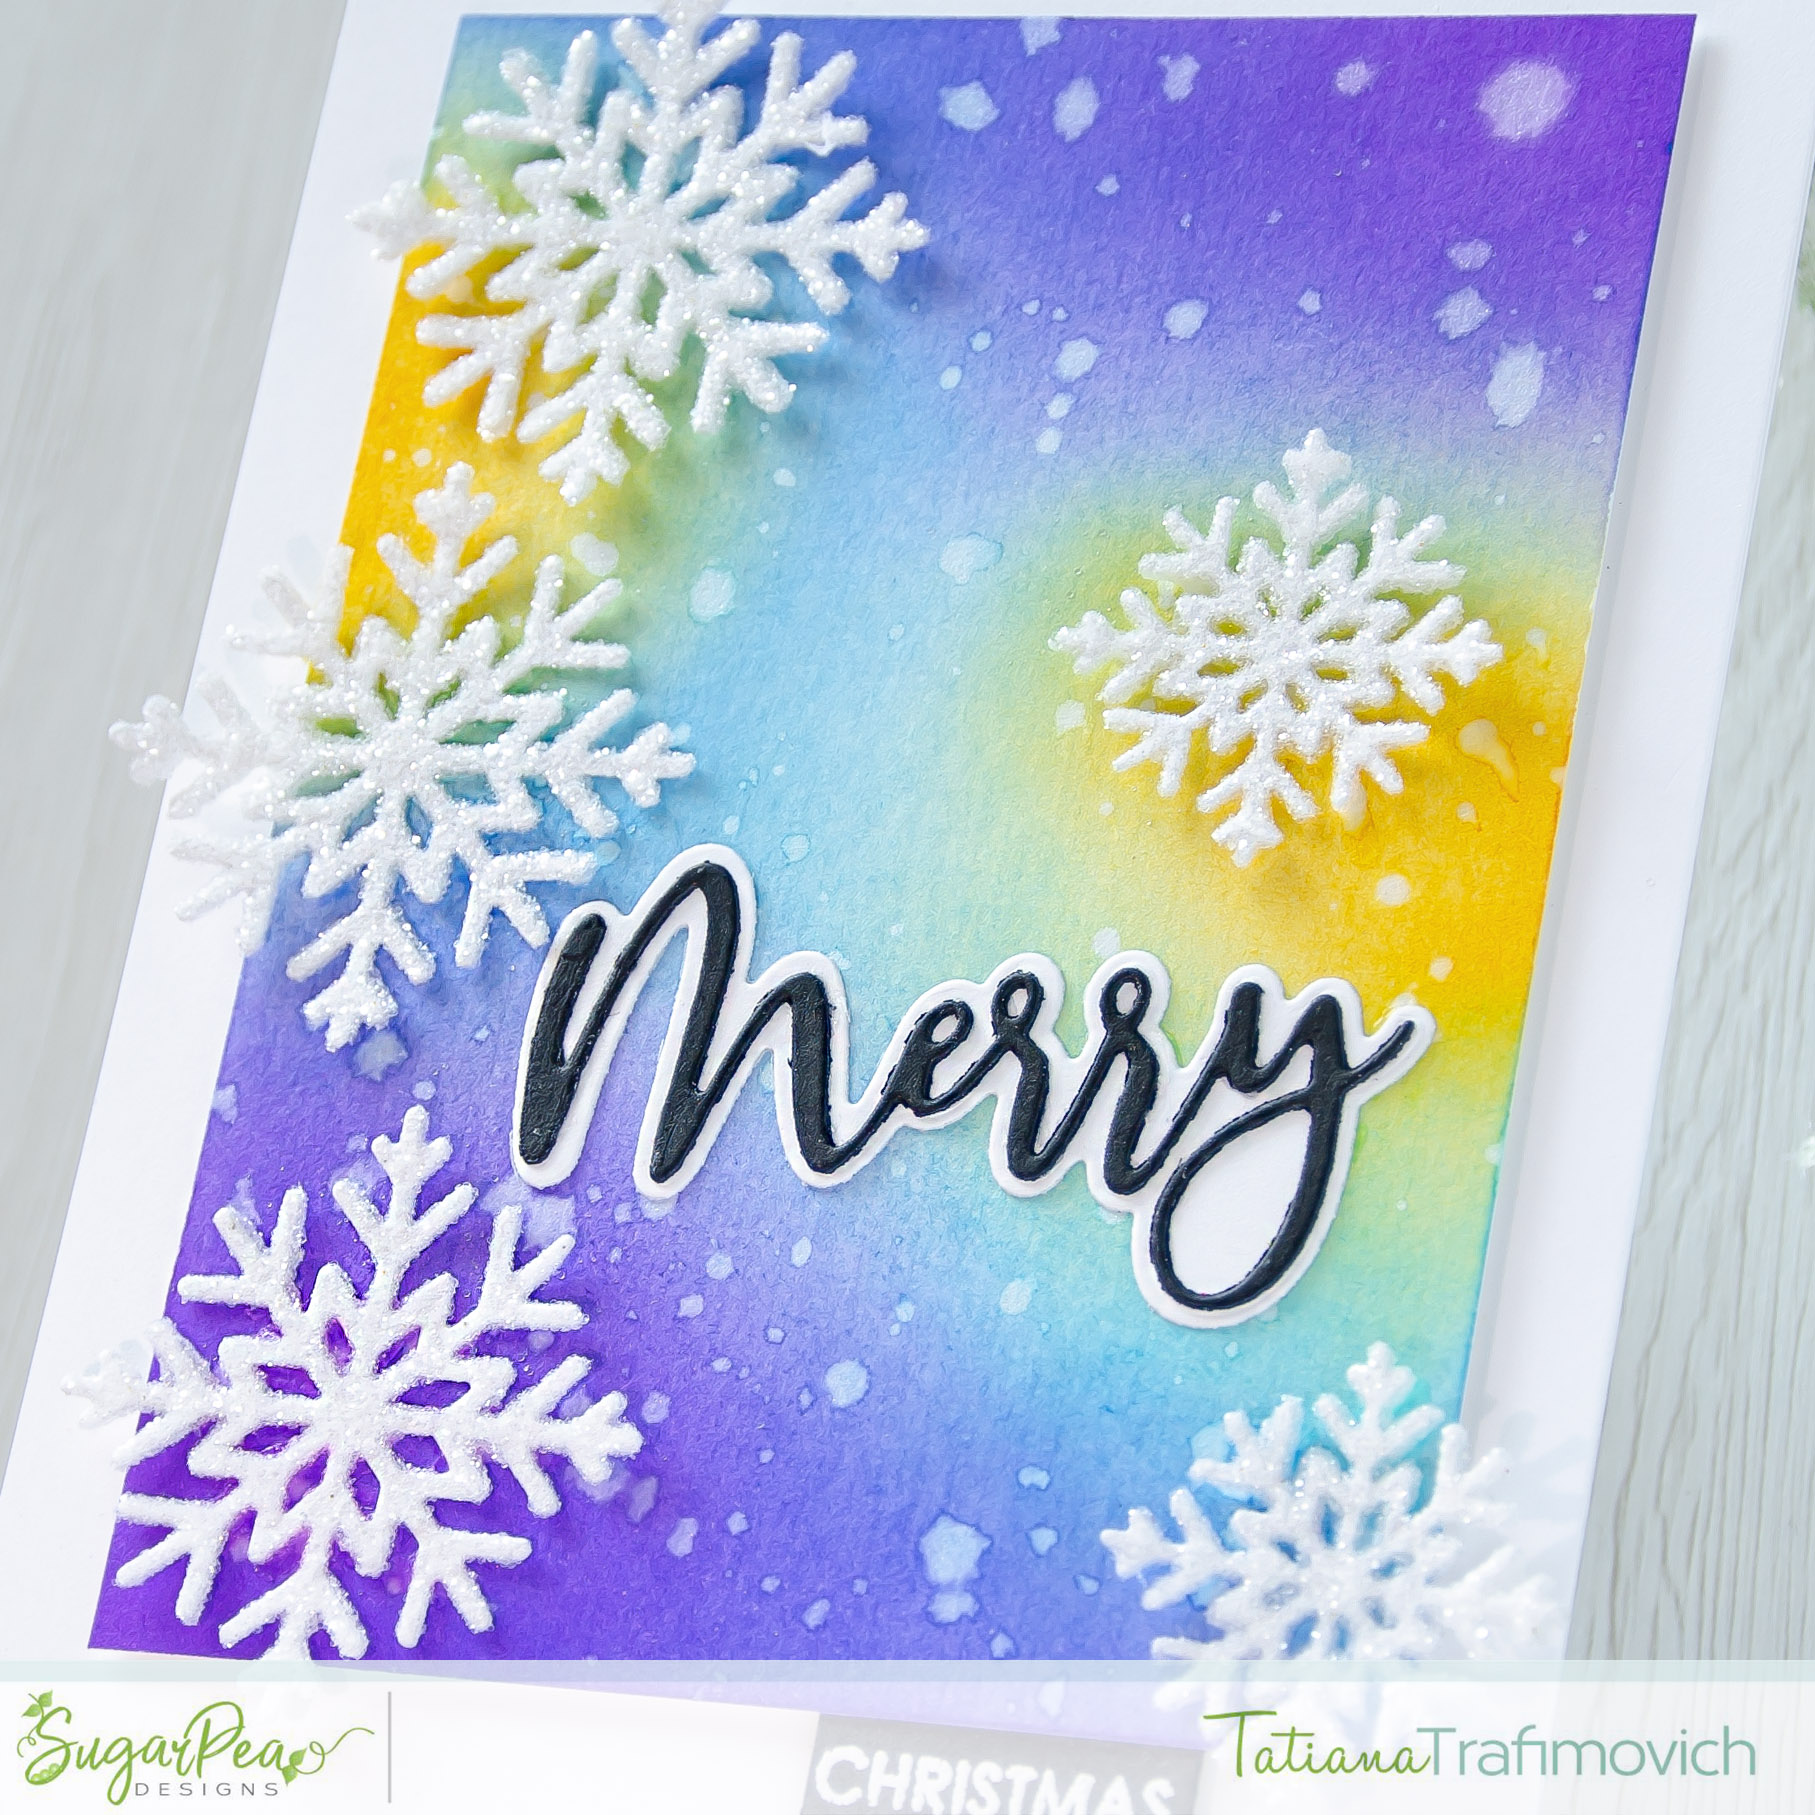 Merry Christmas #handmade card by Tatiana Trafimovich #tatianacraftandart - Snowflake Tag SugarCut by SugarPea Designs #sugarpeadesigns